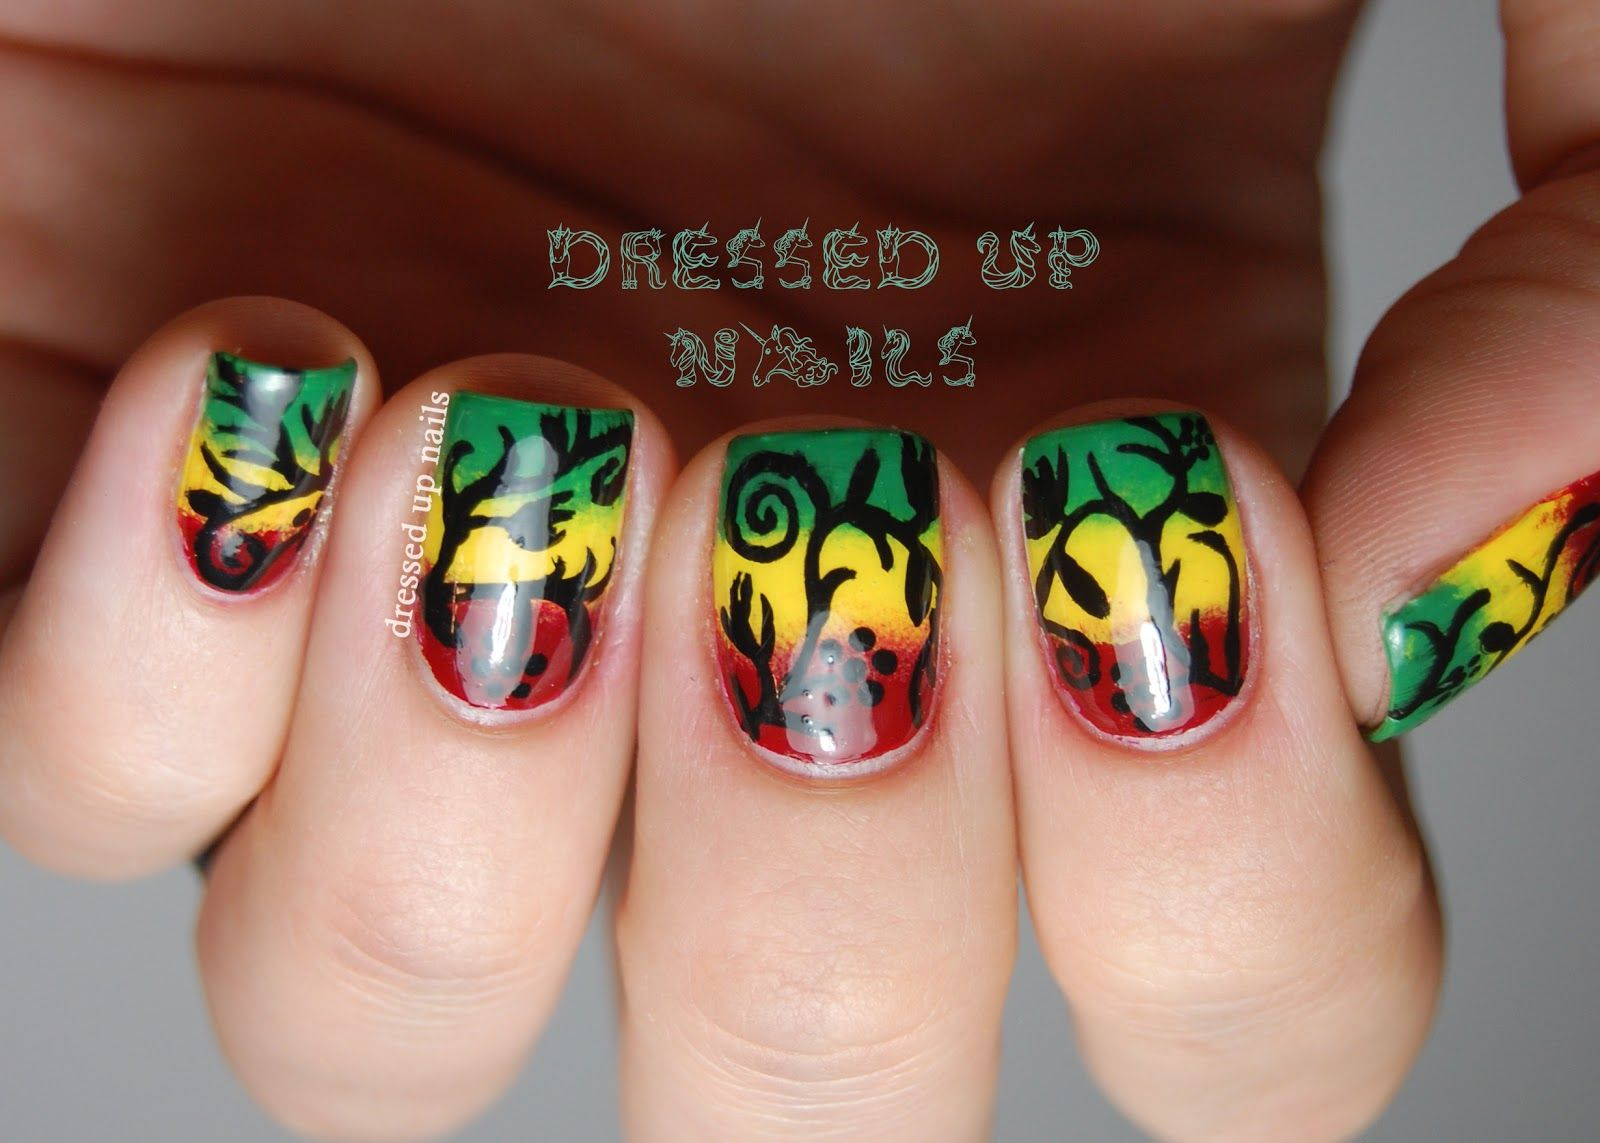 Dressed Up Nails - freehand floral silhouette nail art over a ...